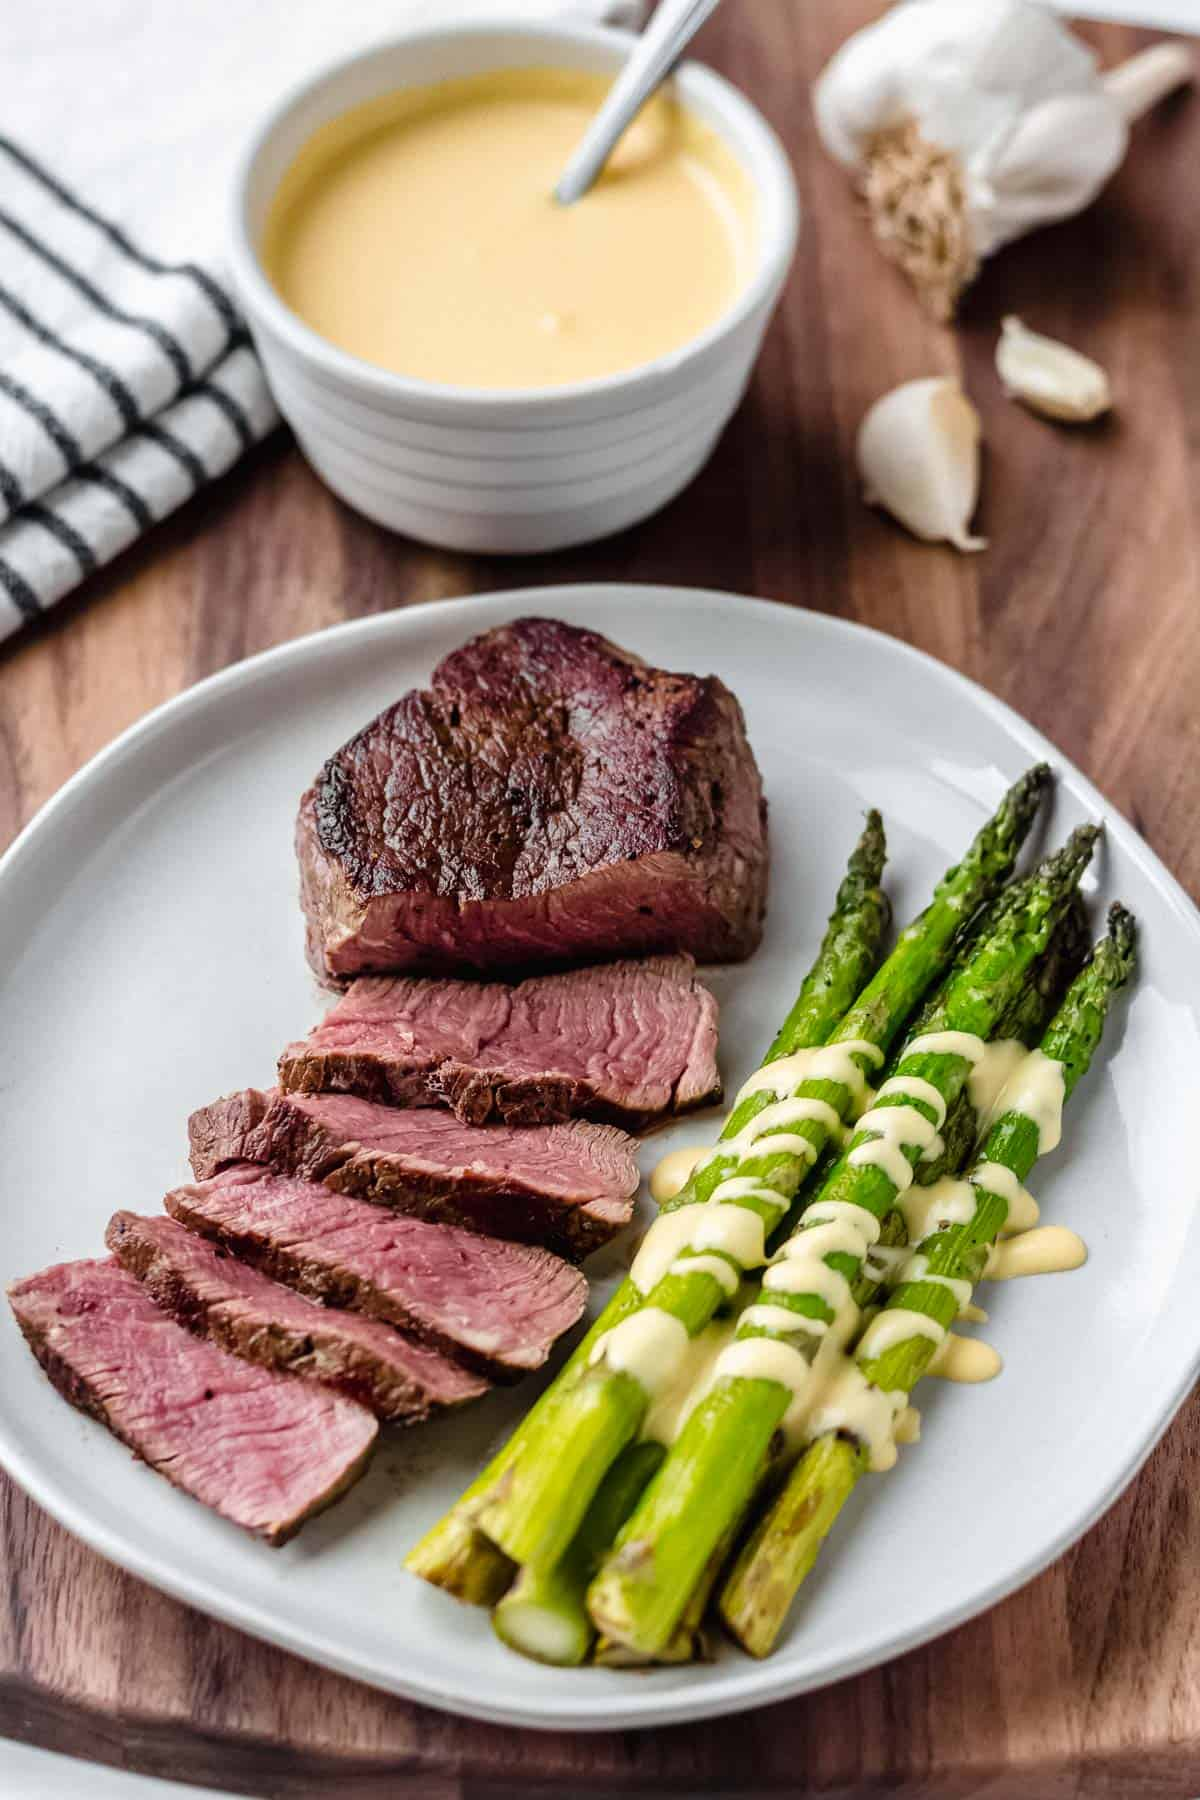 A plate with steak and asparagus drizzled with Hollandaise sauce on a wood background with garlic, a small bowl of hollandaise and a striped towel in the background